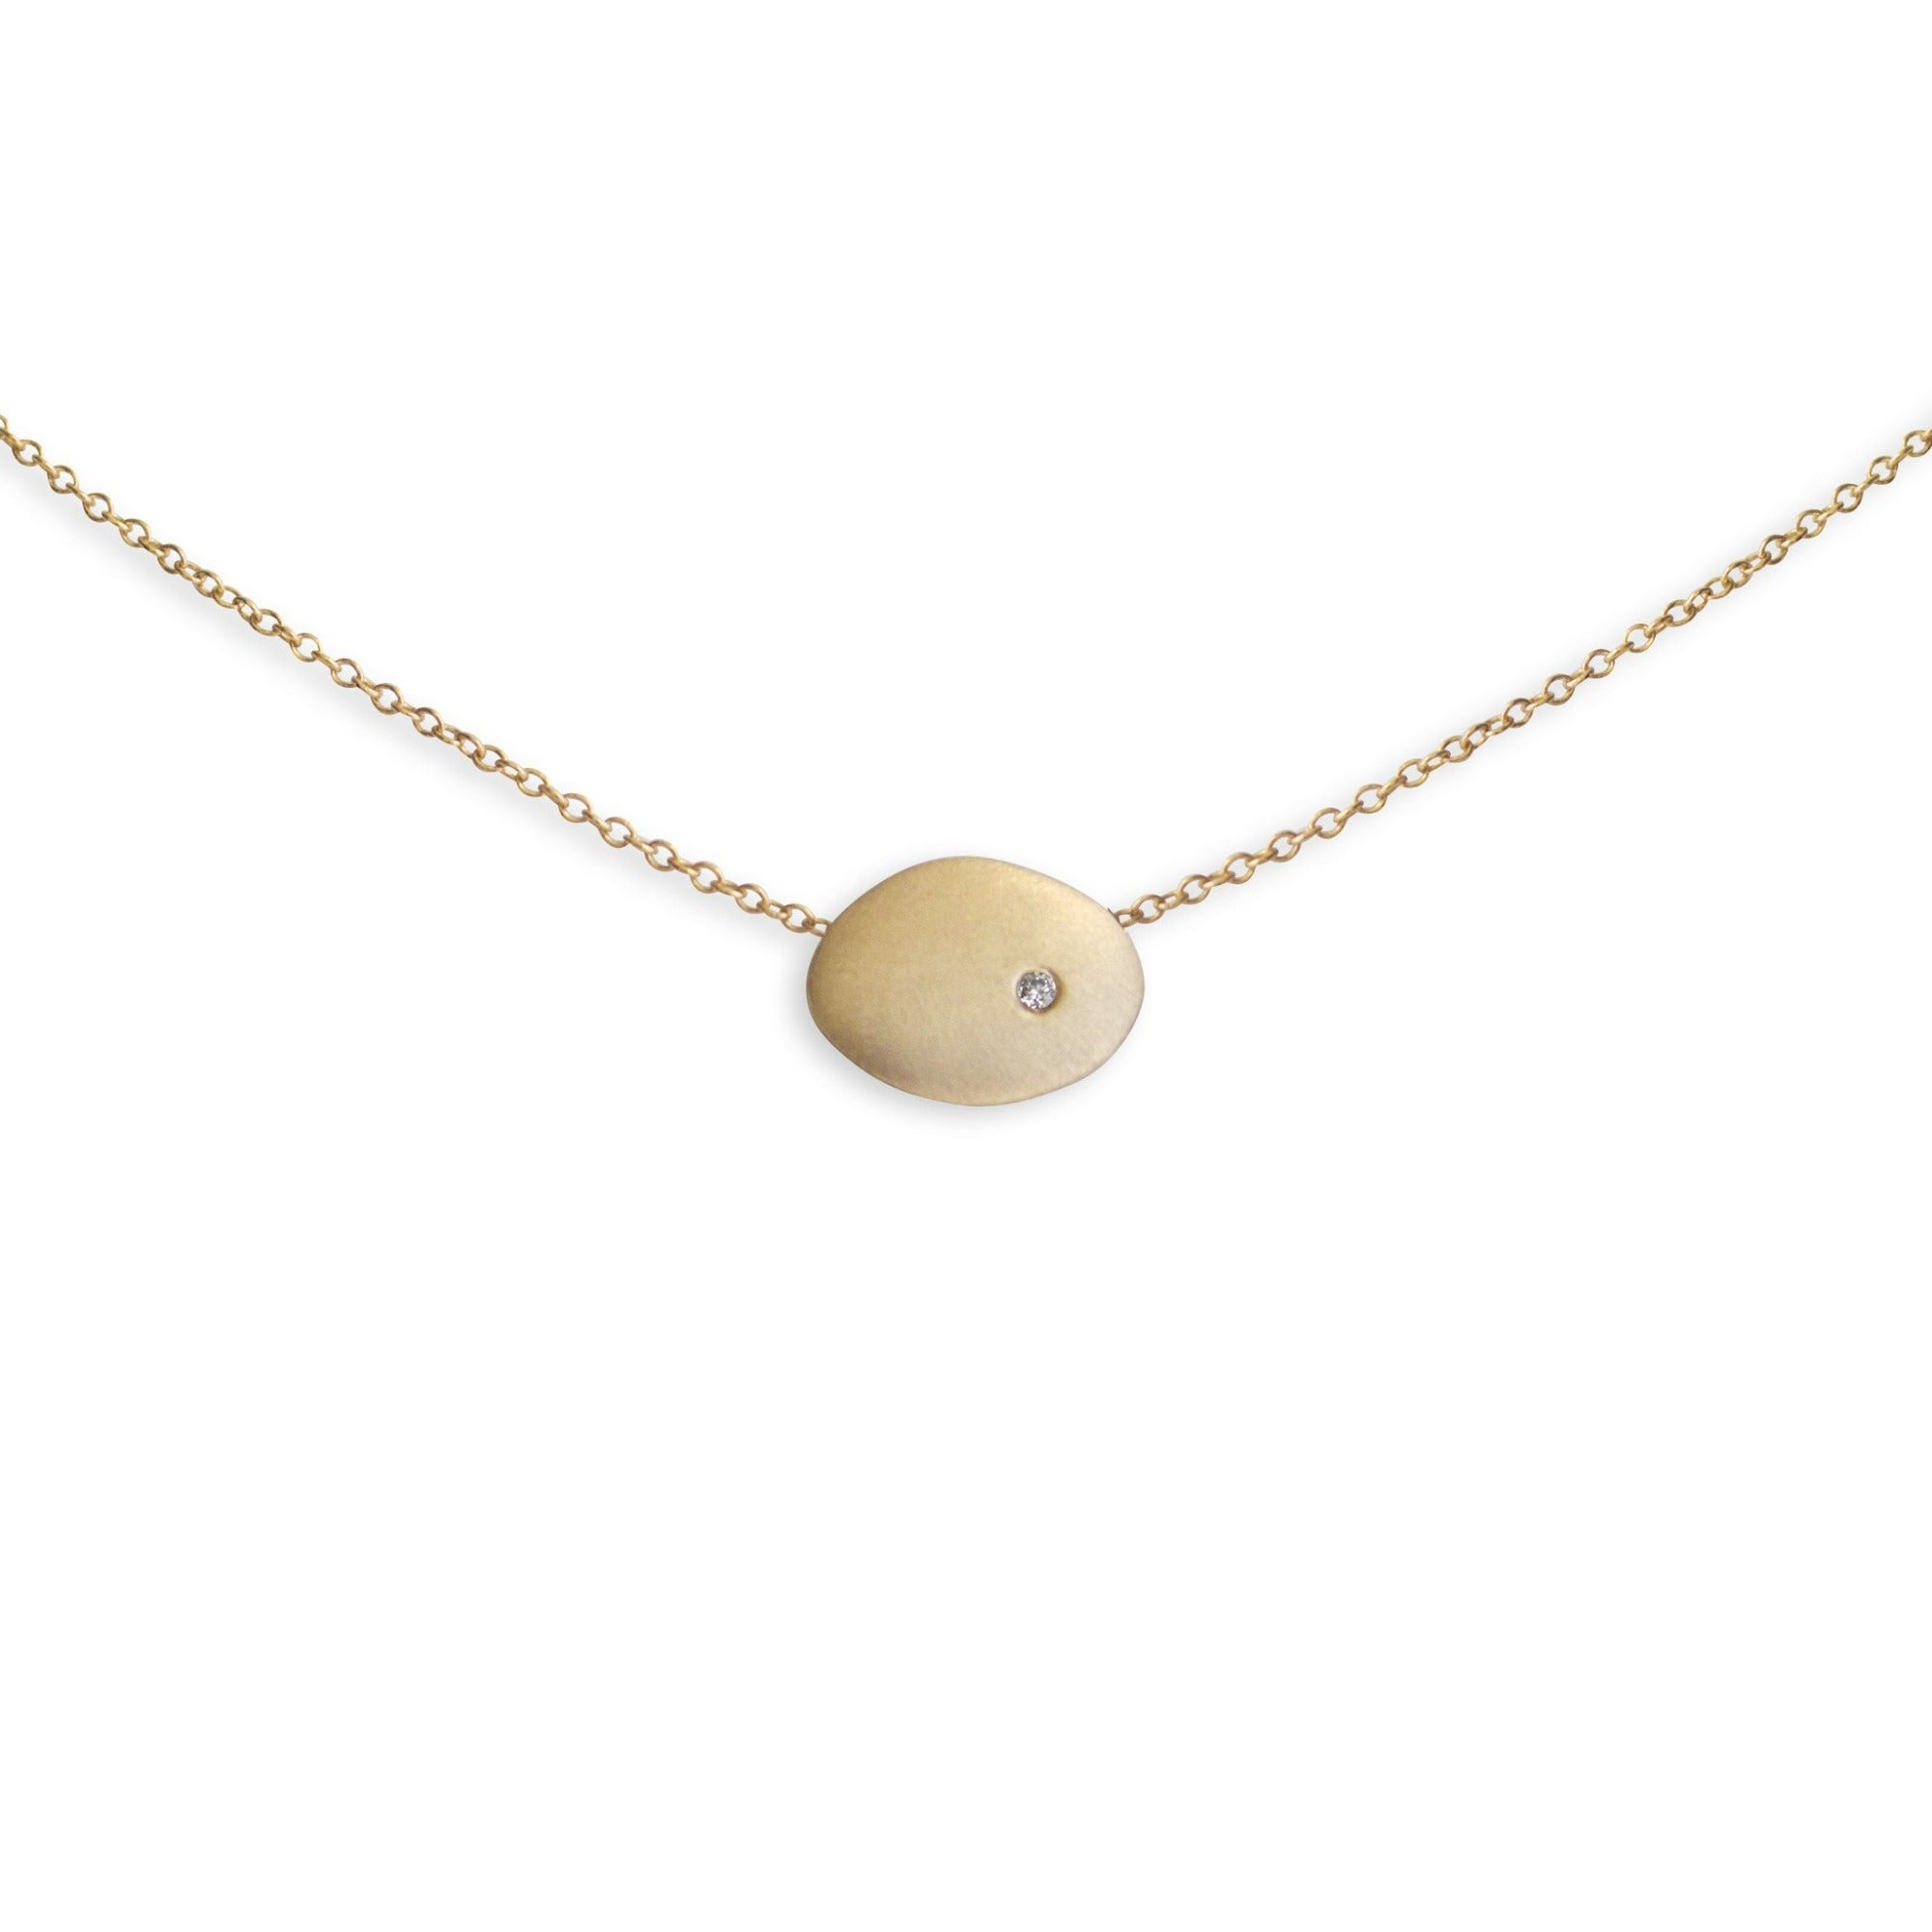 14k yellow gold with white diamond small disc necklace